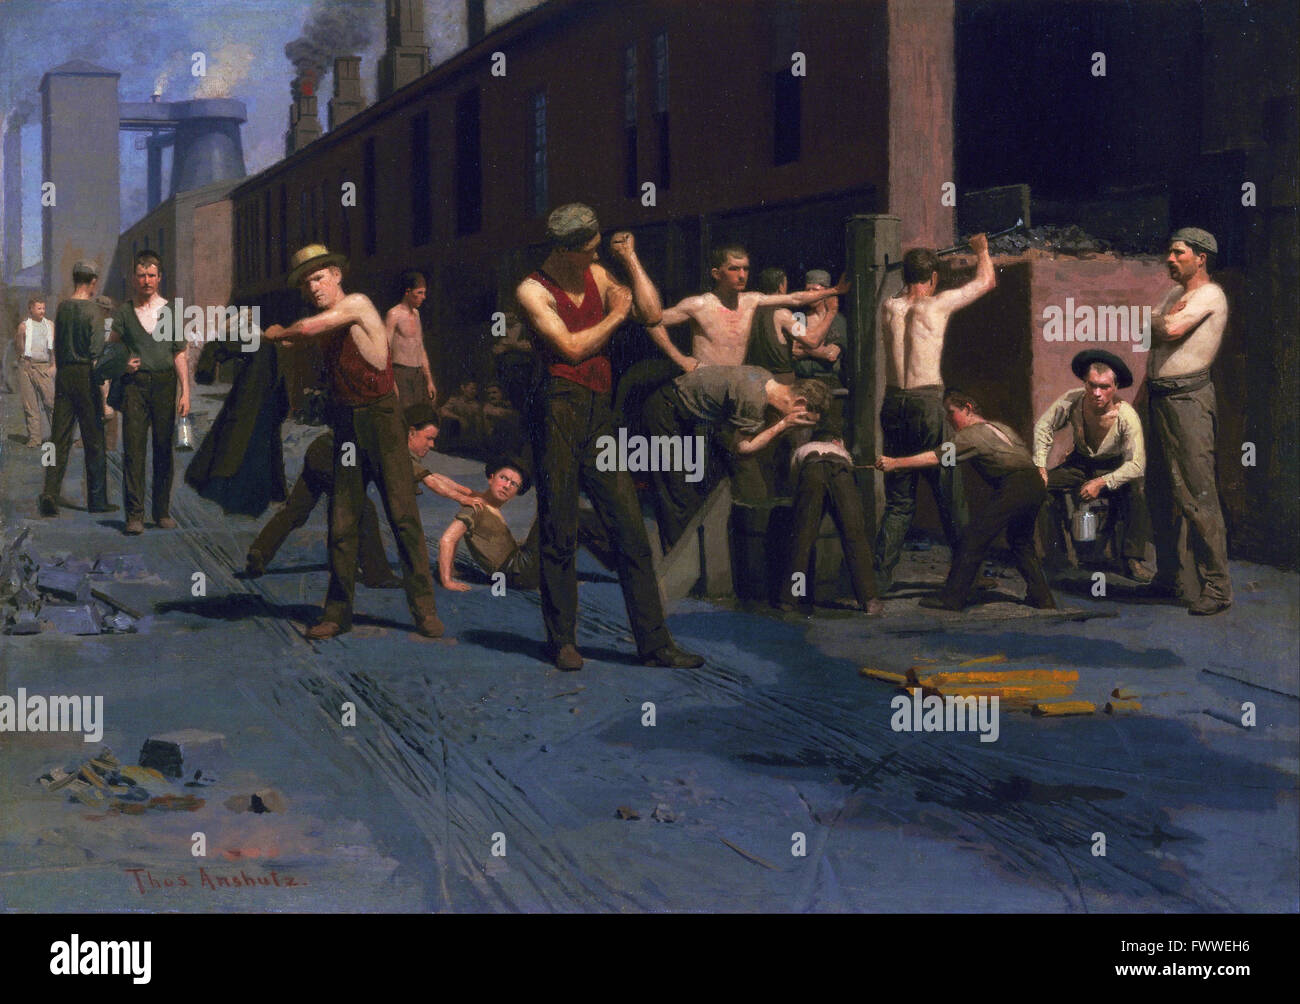 Thomas Pollack Anshutz - The Ironworkers' Noontime - de Young Museum - Stock Image